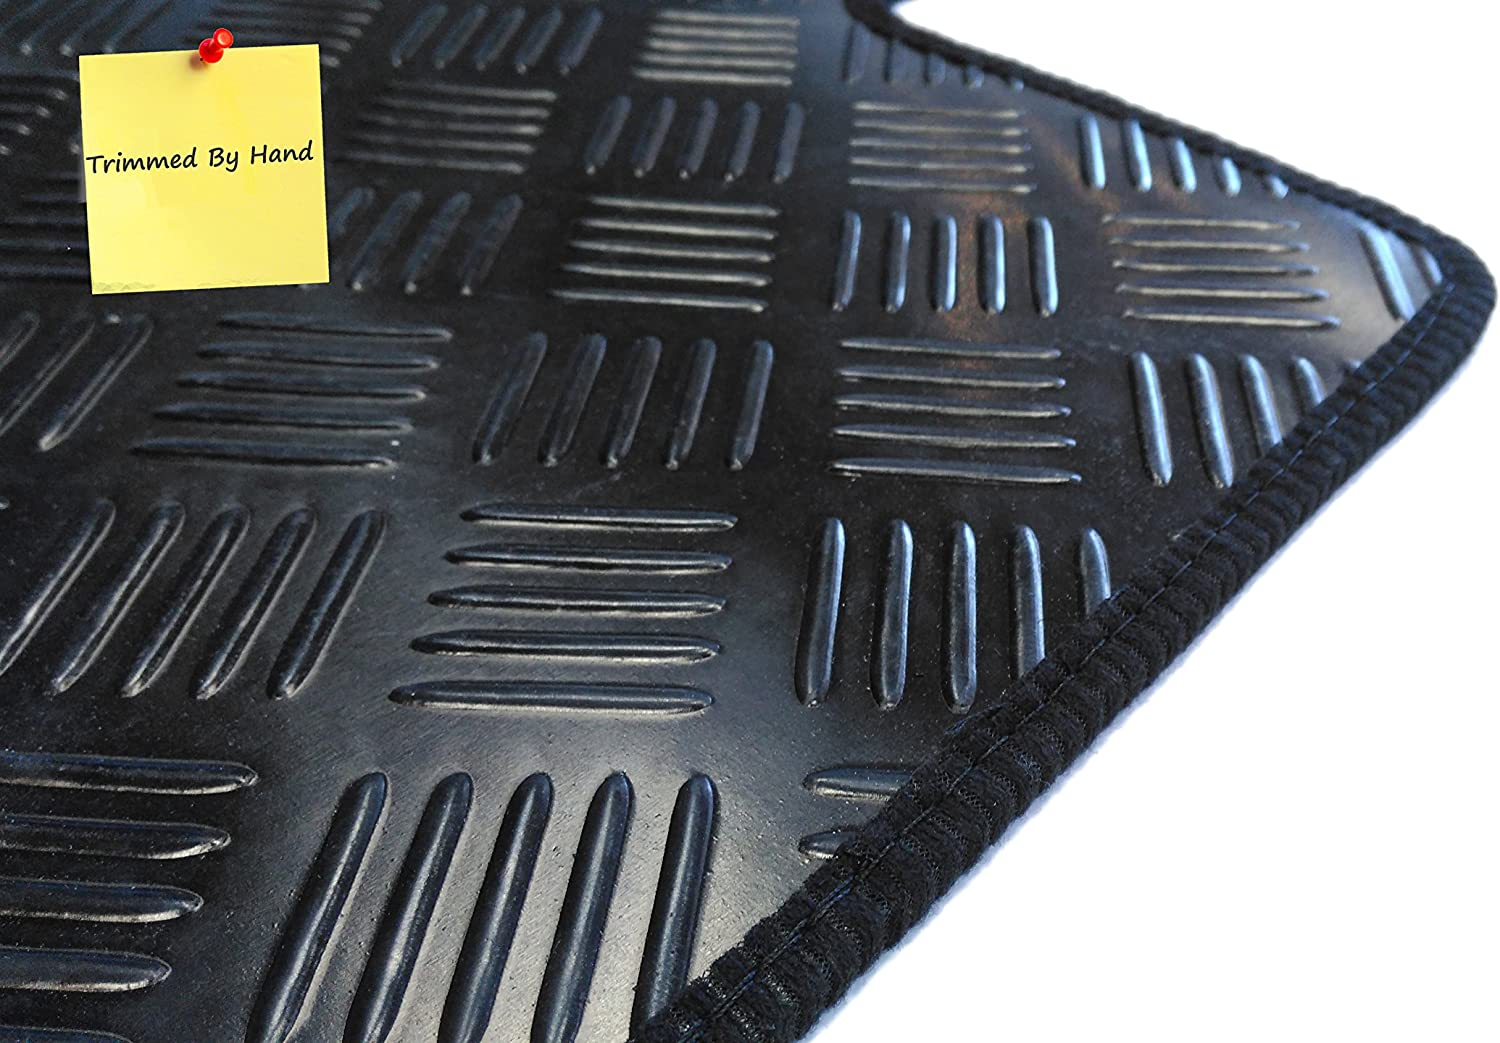 Connected Essentials CEM300 Civic//Civic Tourer 2013- Black with Black Trim 3mm Rubber Diesel Car Mat Set